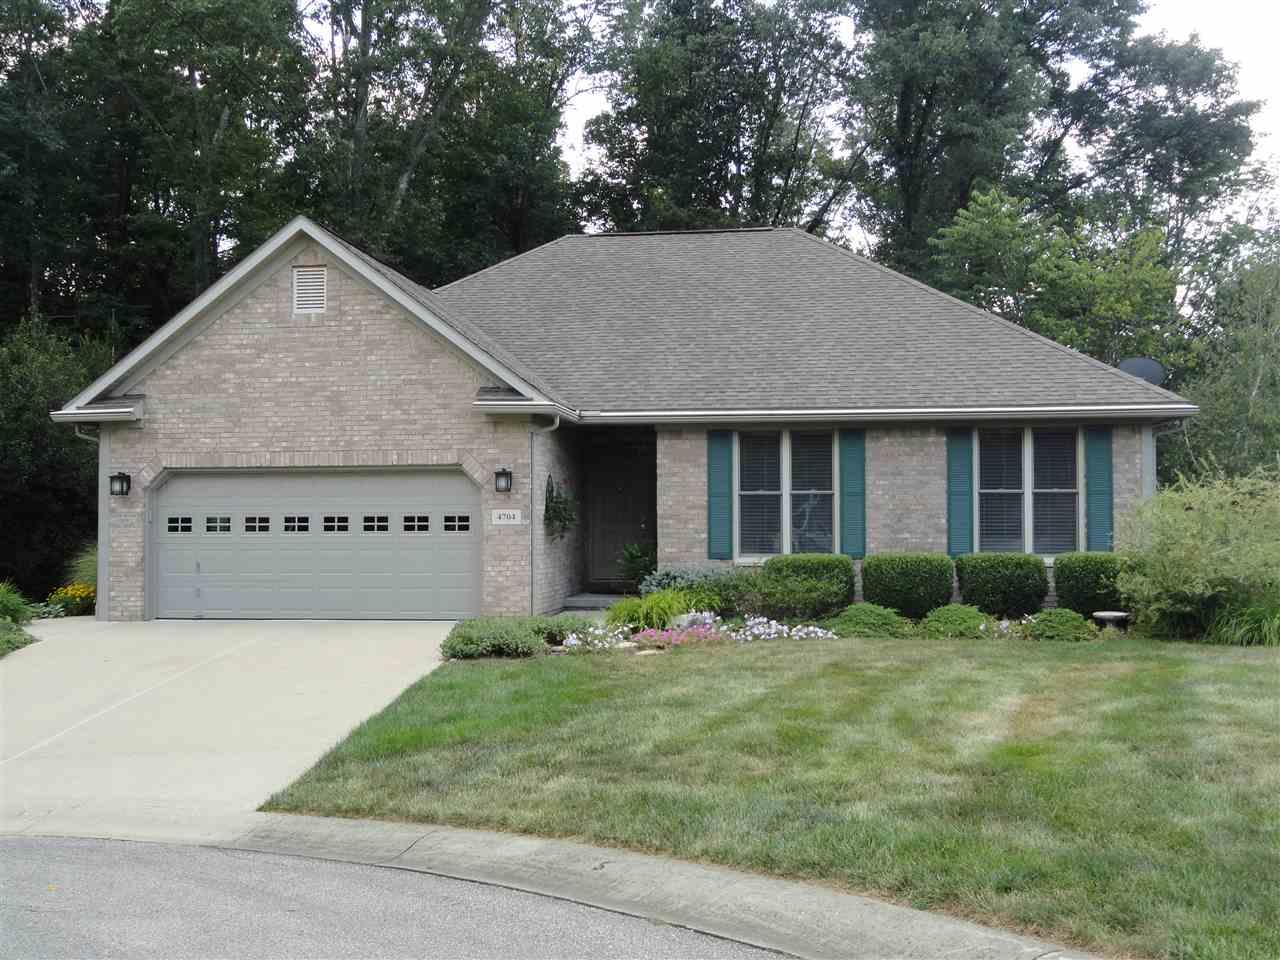 4704 E Cardiff, Bloomington, IN 47401